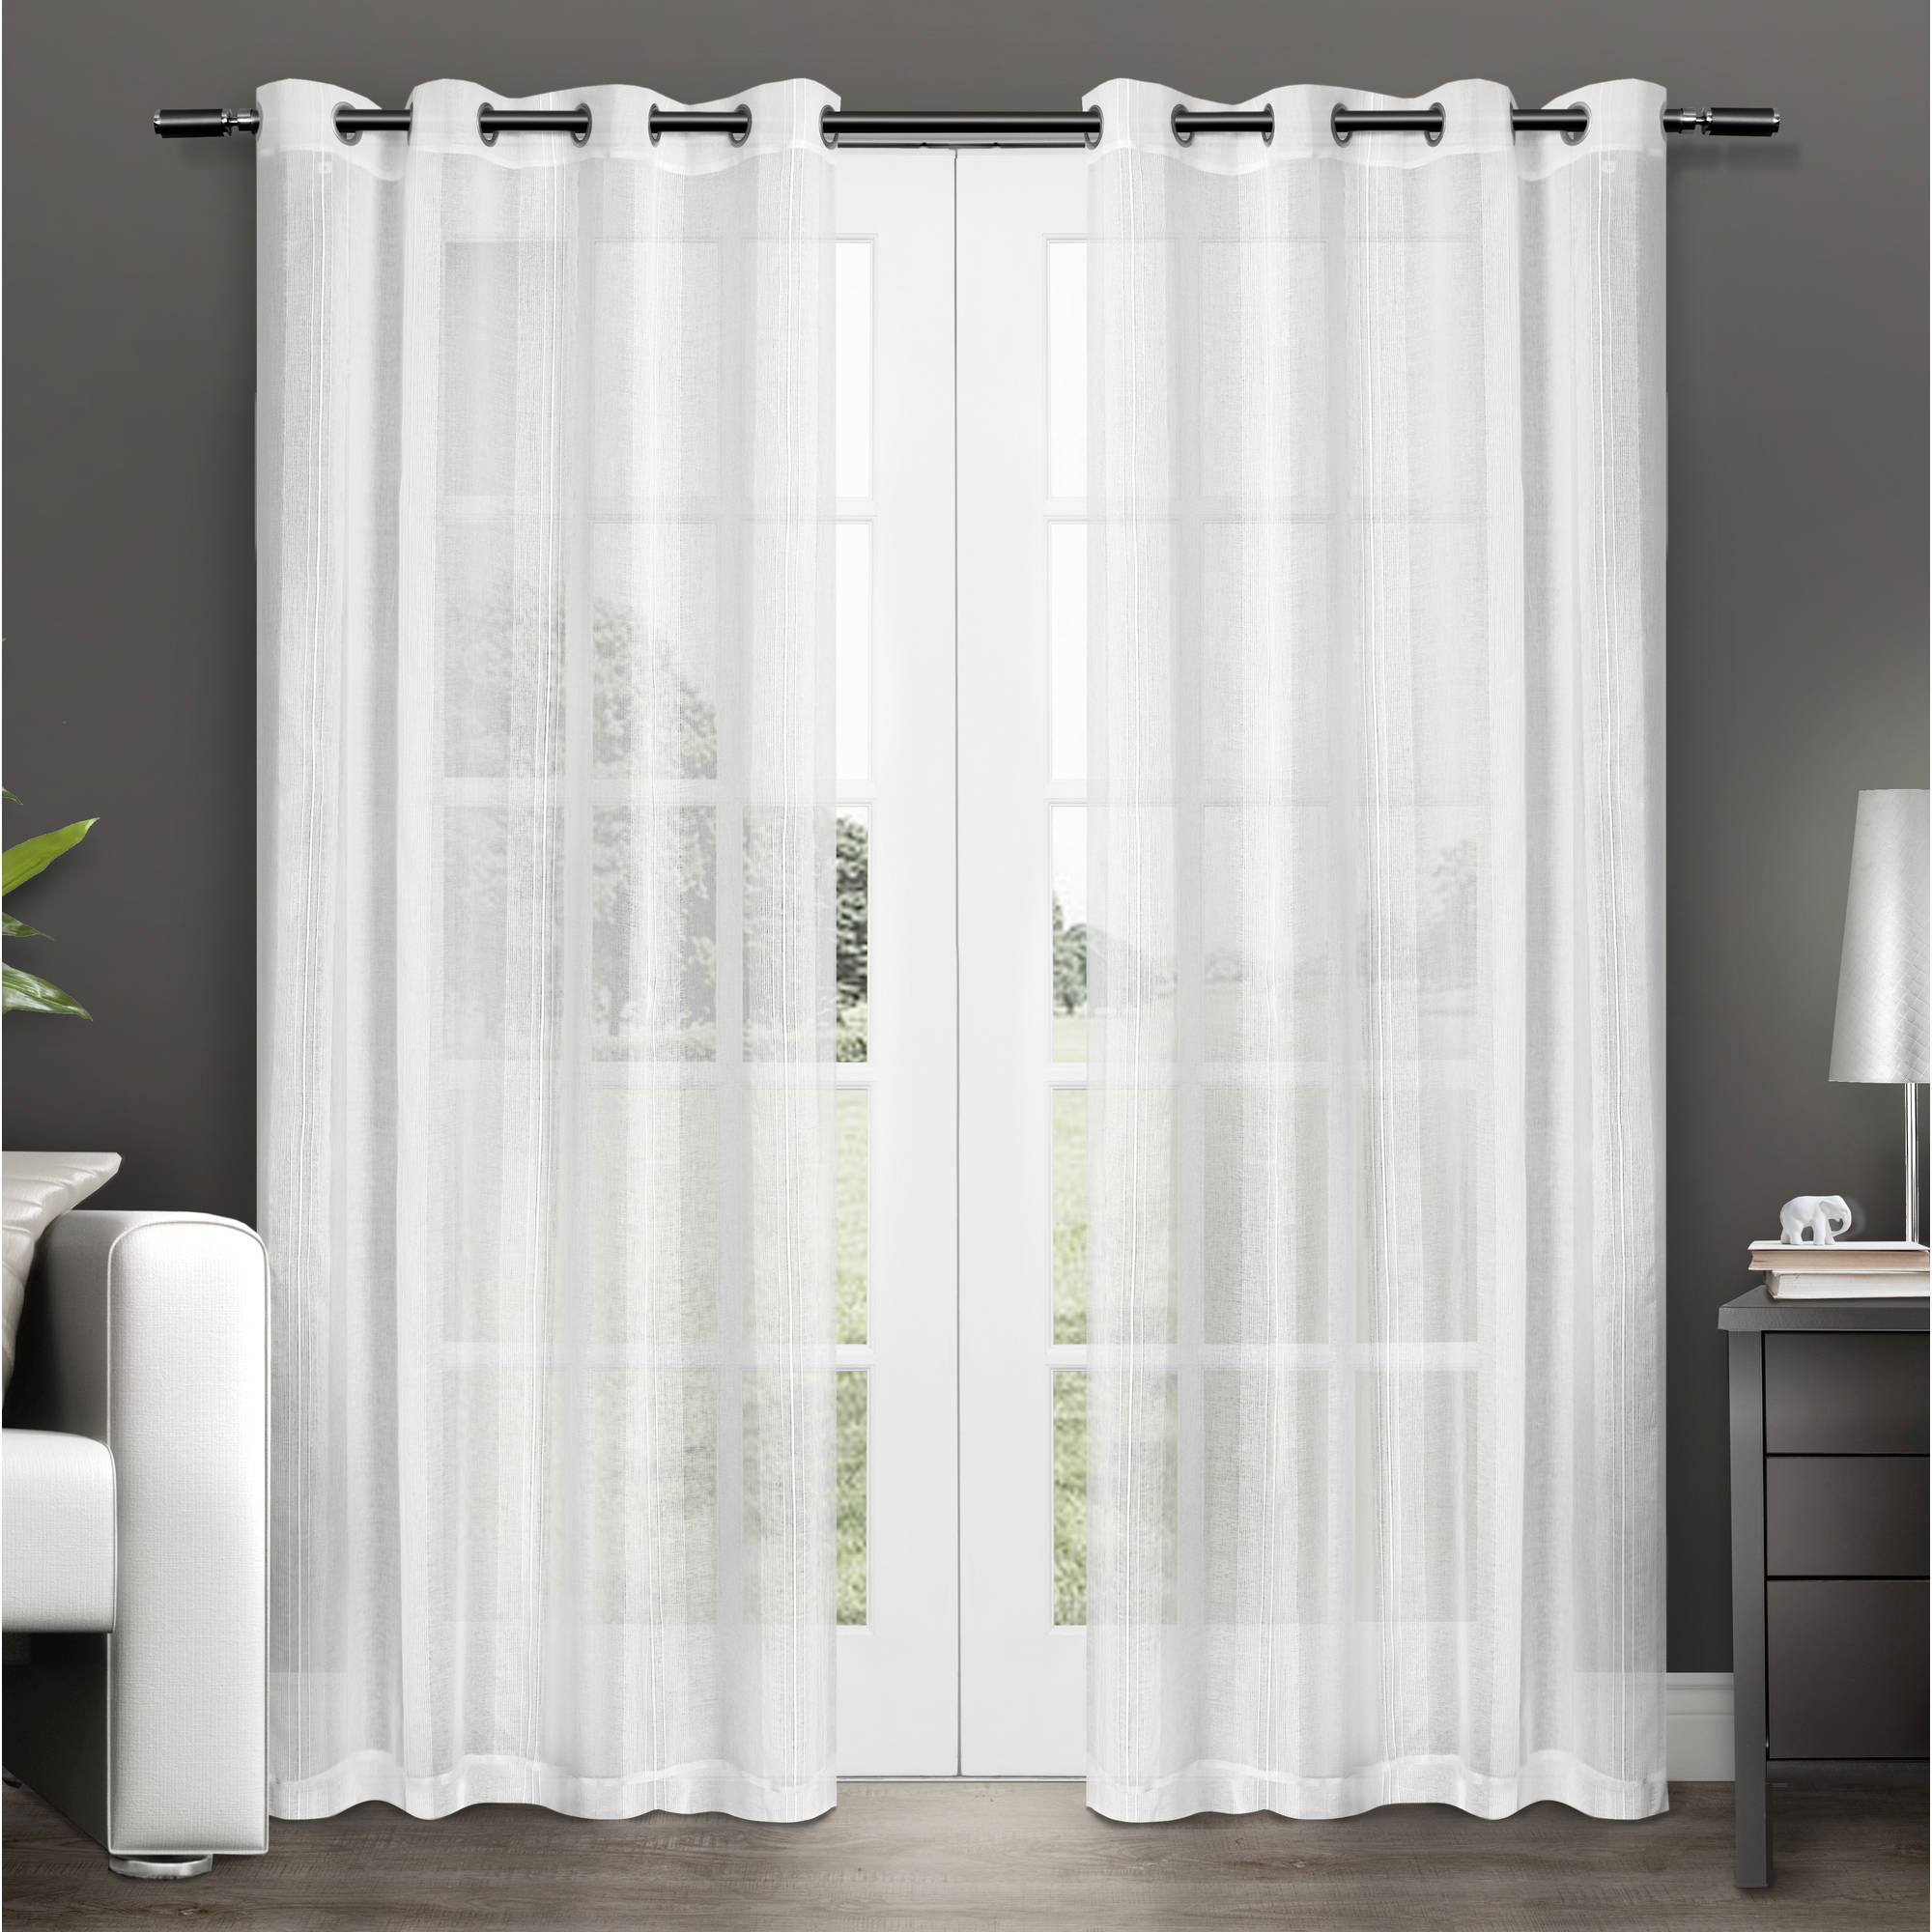 Penny Sheer Grommet-Top Window Curtain Panels, Set of 2 by Exclusive Home